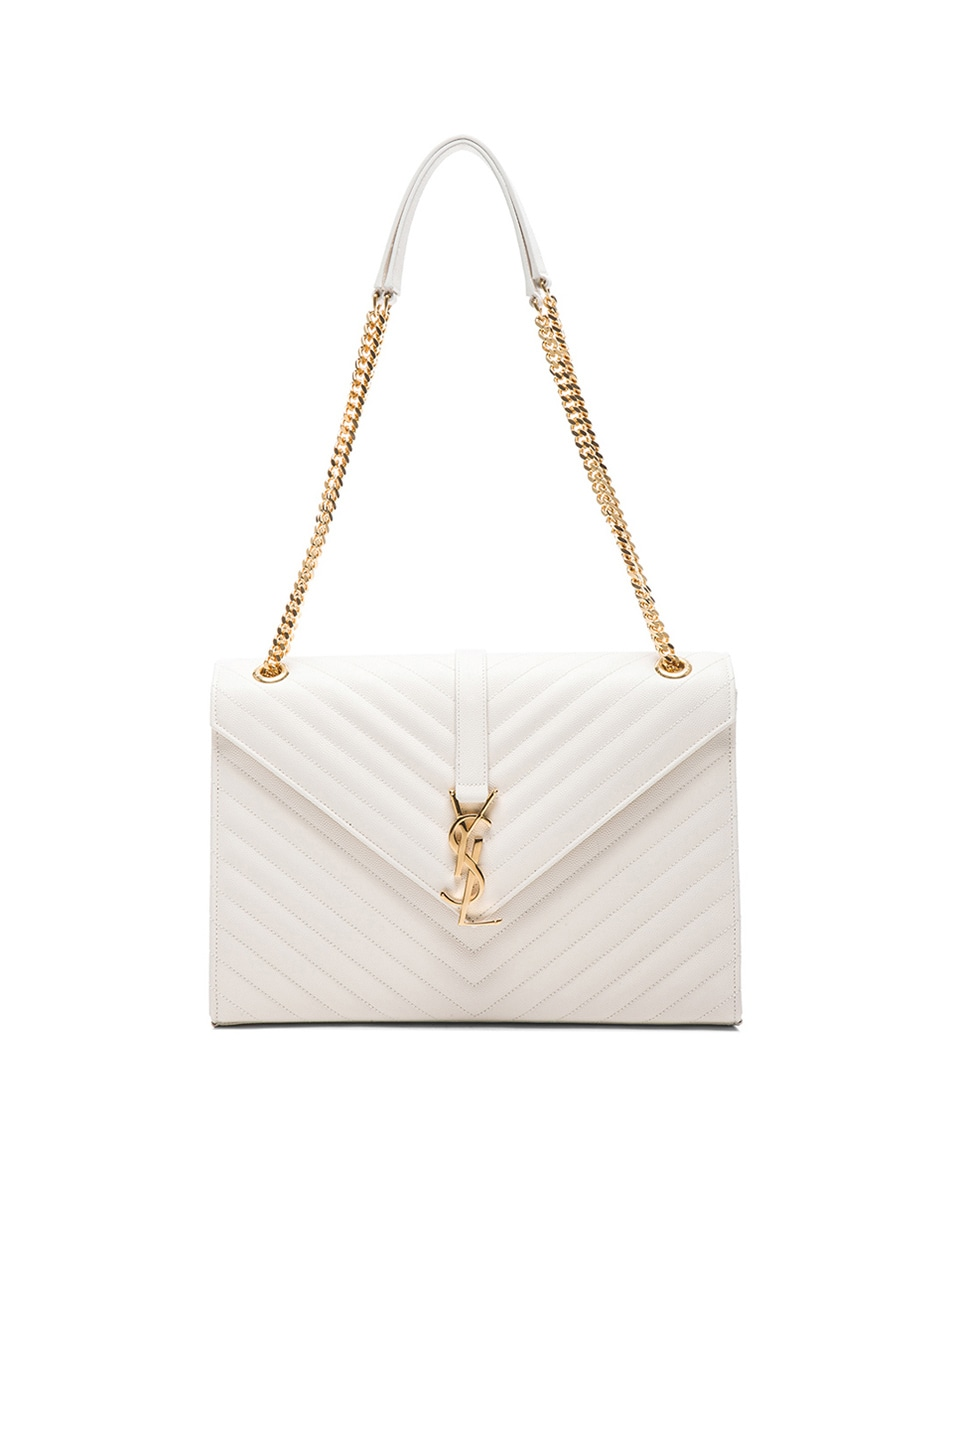 Image 1 of Saint Laurent Large Monogram Envelope Chain Bag in Blanc Grise